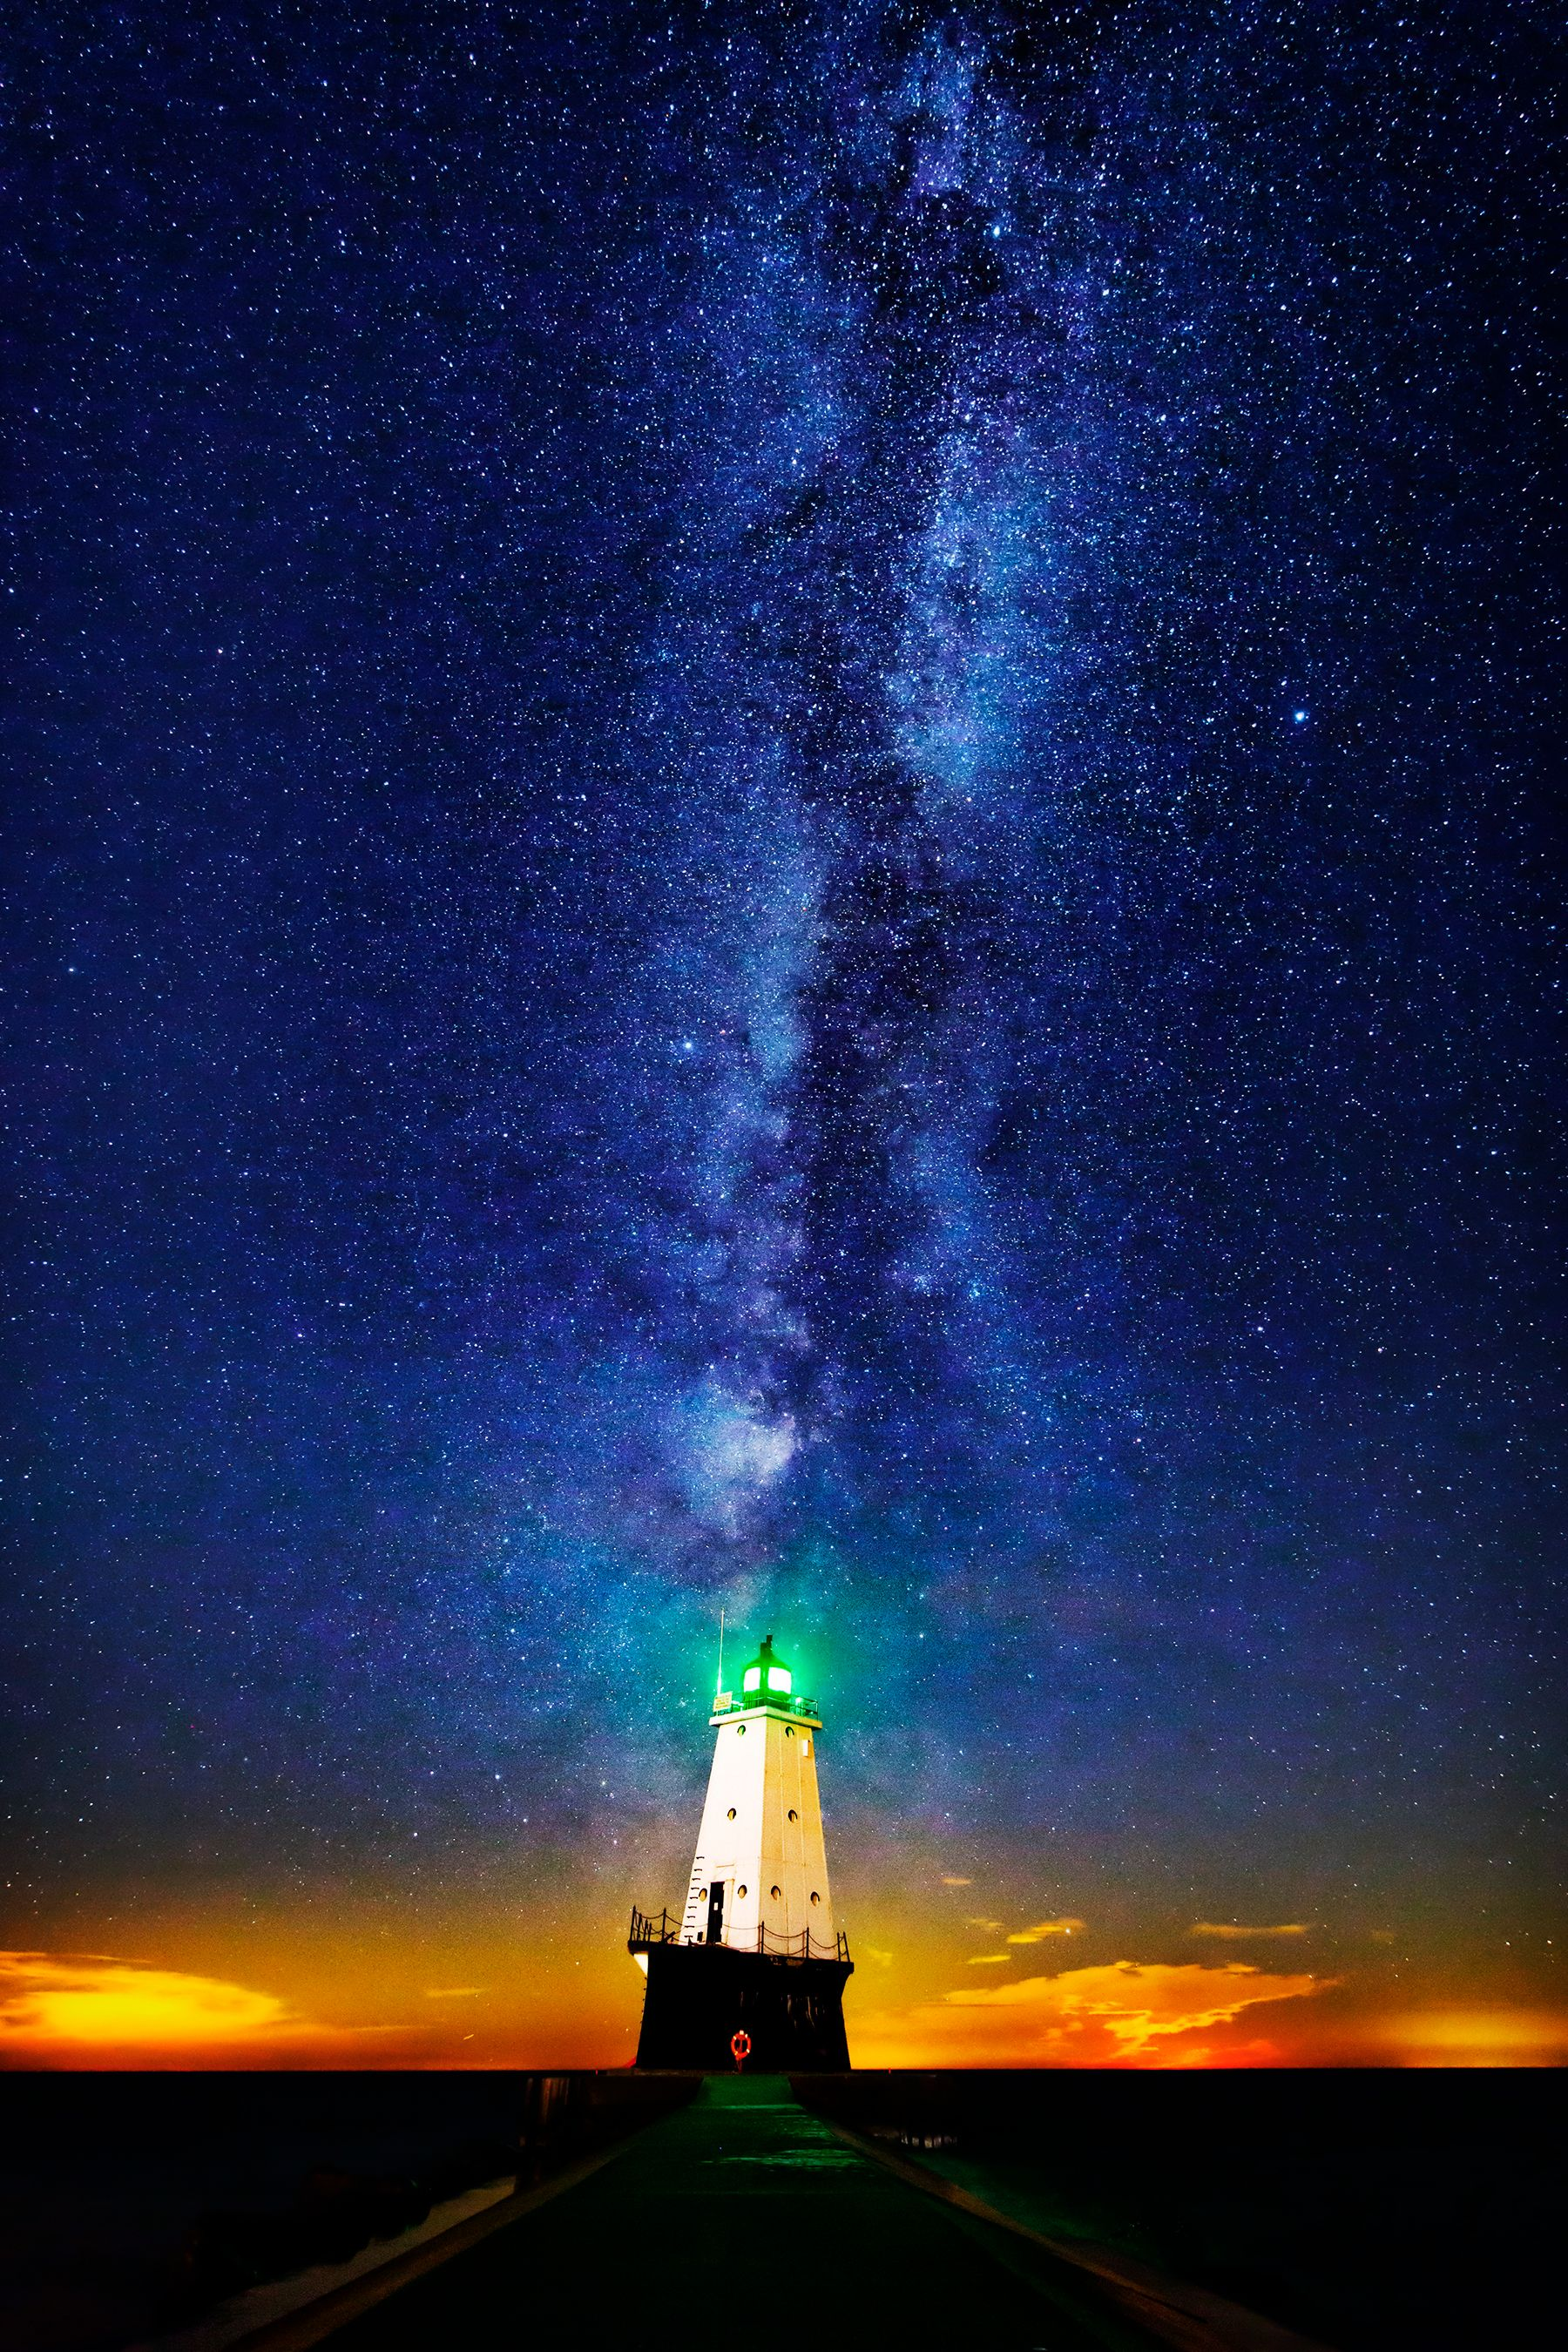 Ludington_NightSky_Canon_6x9.jpg